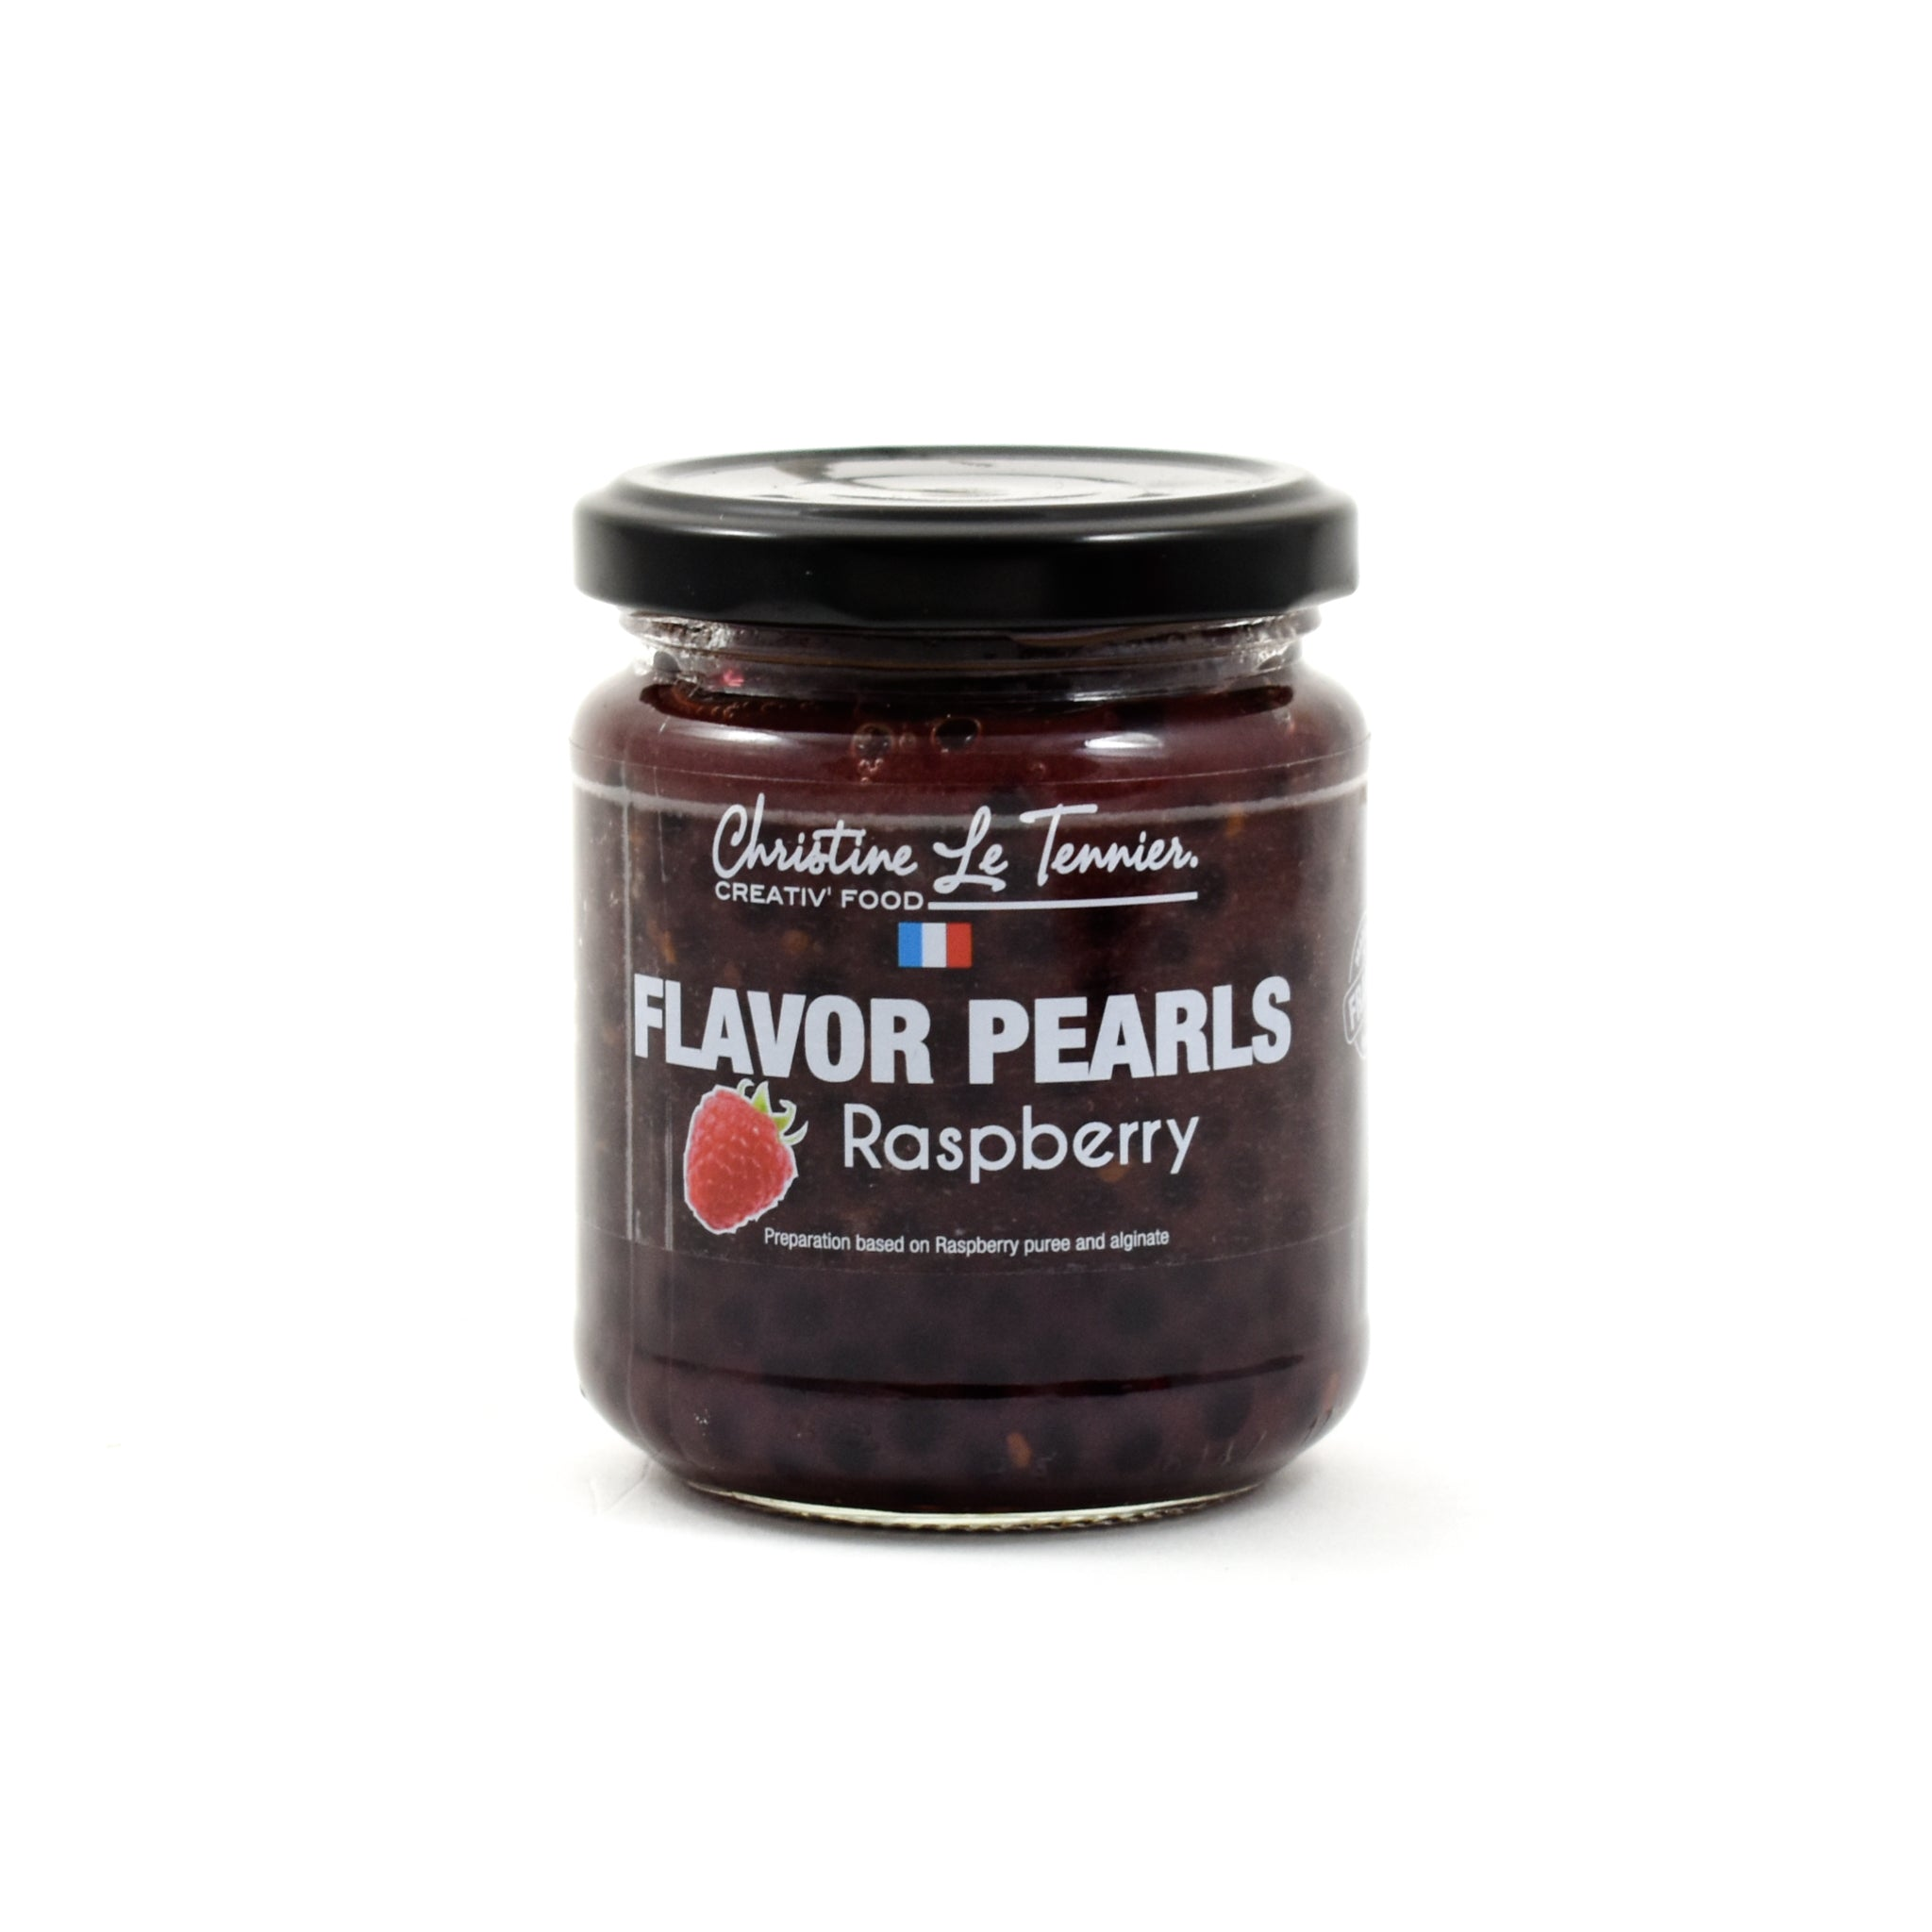 Raspberry Flavour Pearls Modernist and Molecular Cuisine French Food & Recipes jar shot